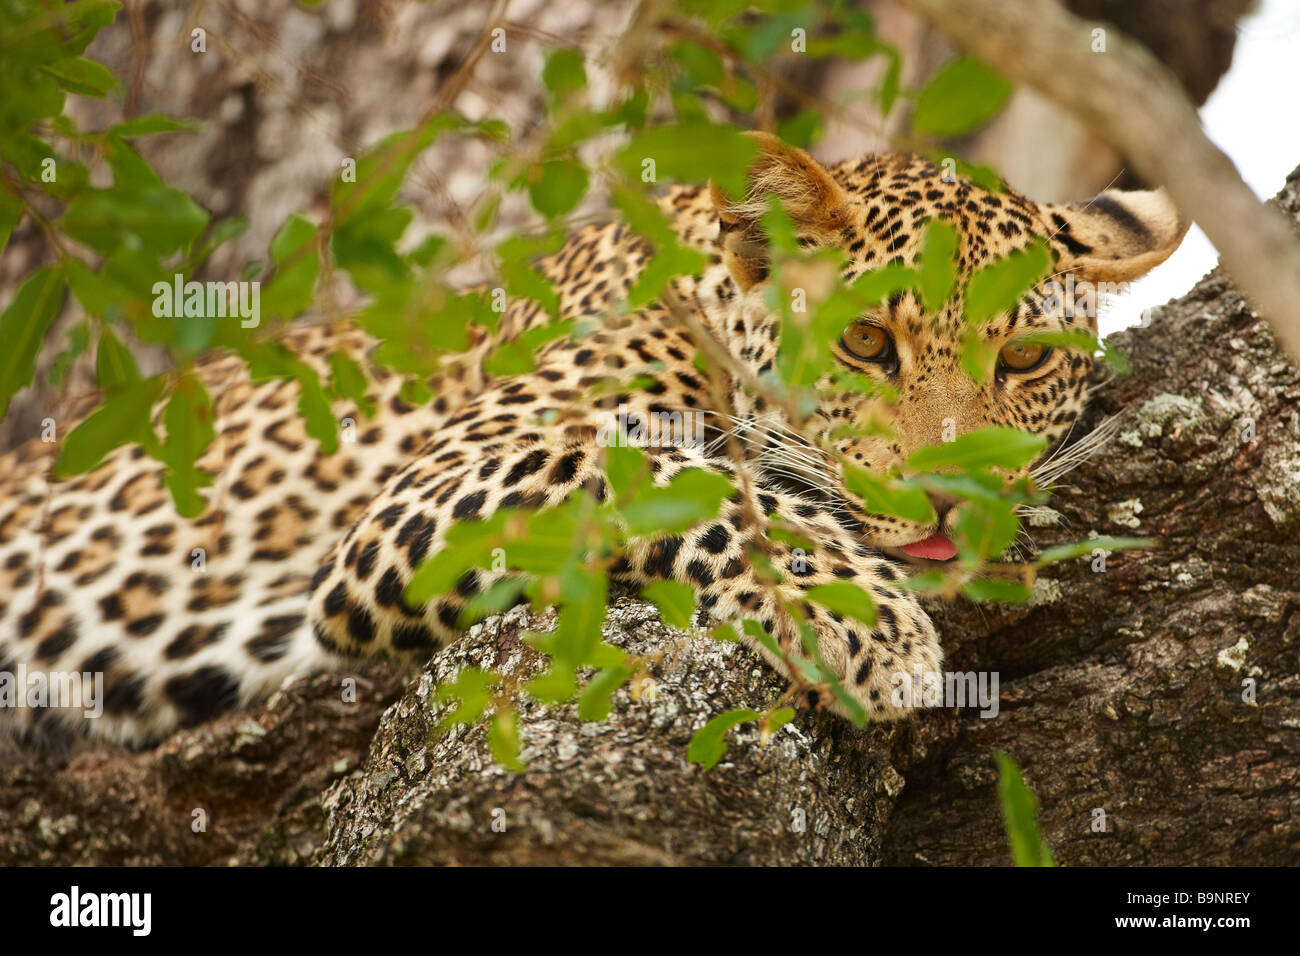 leopard resting in a tree, Kruger National Park, South Africa - Stock Image